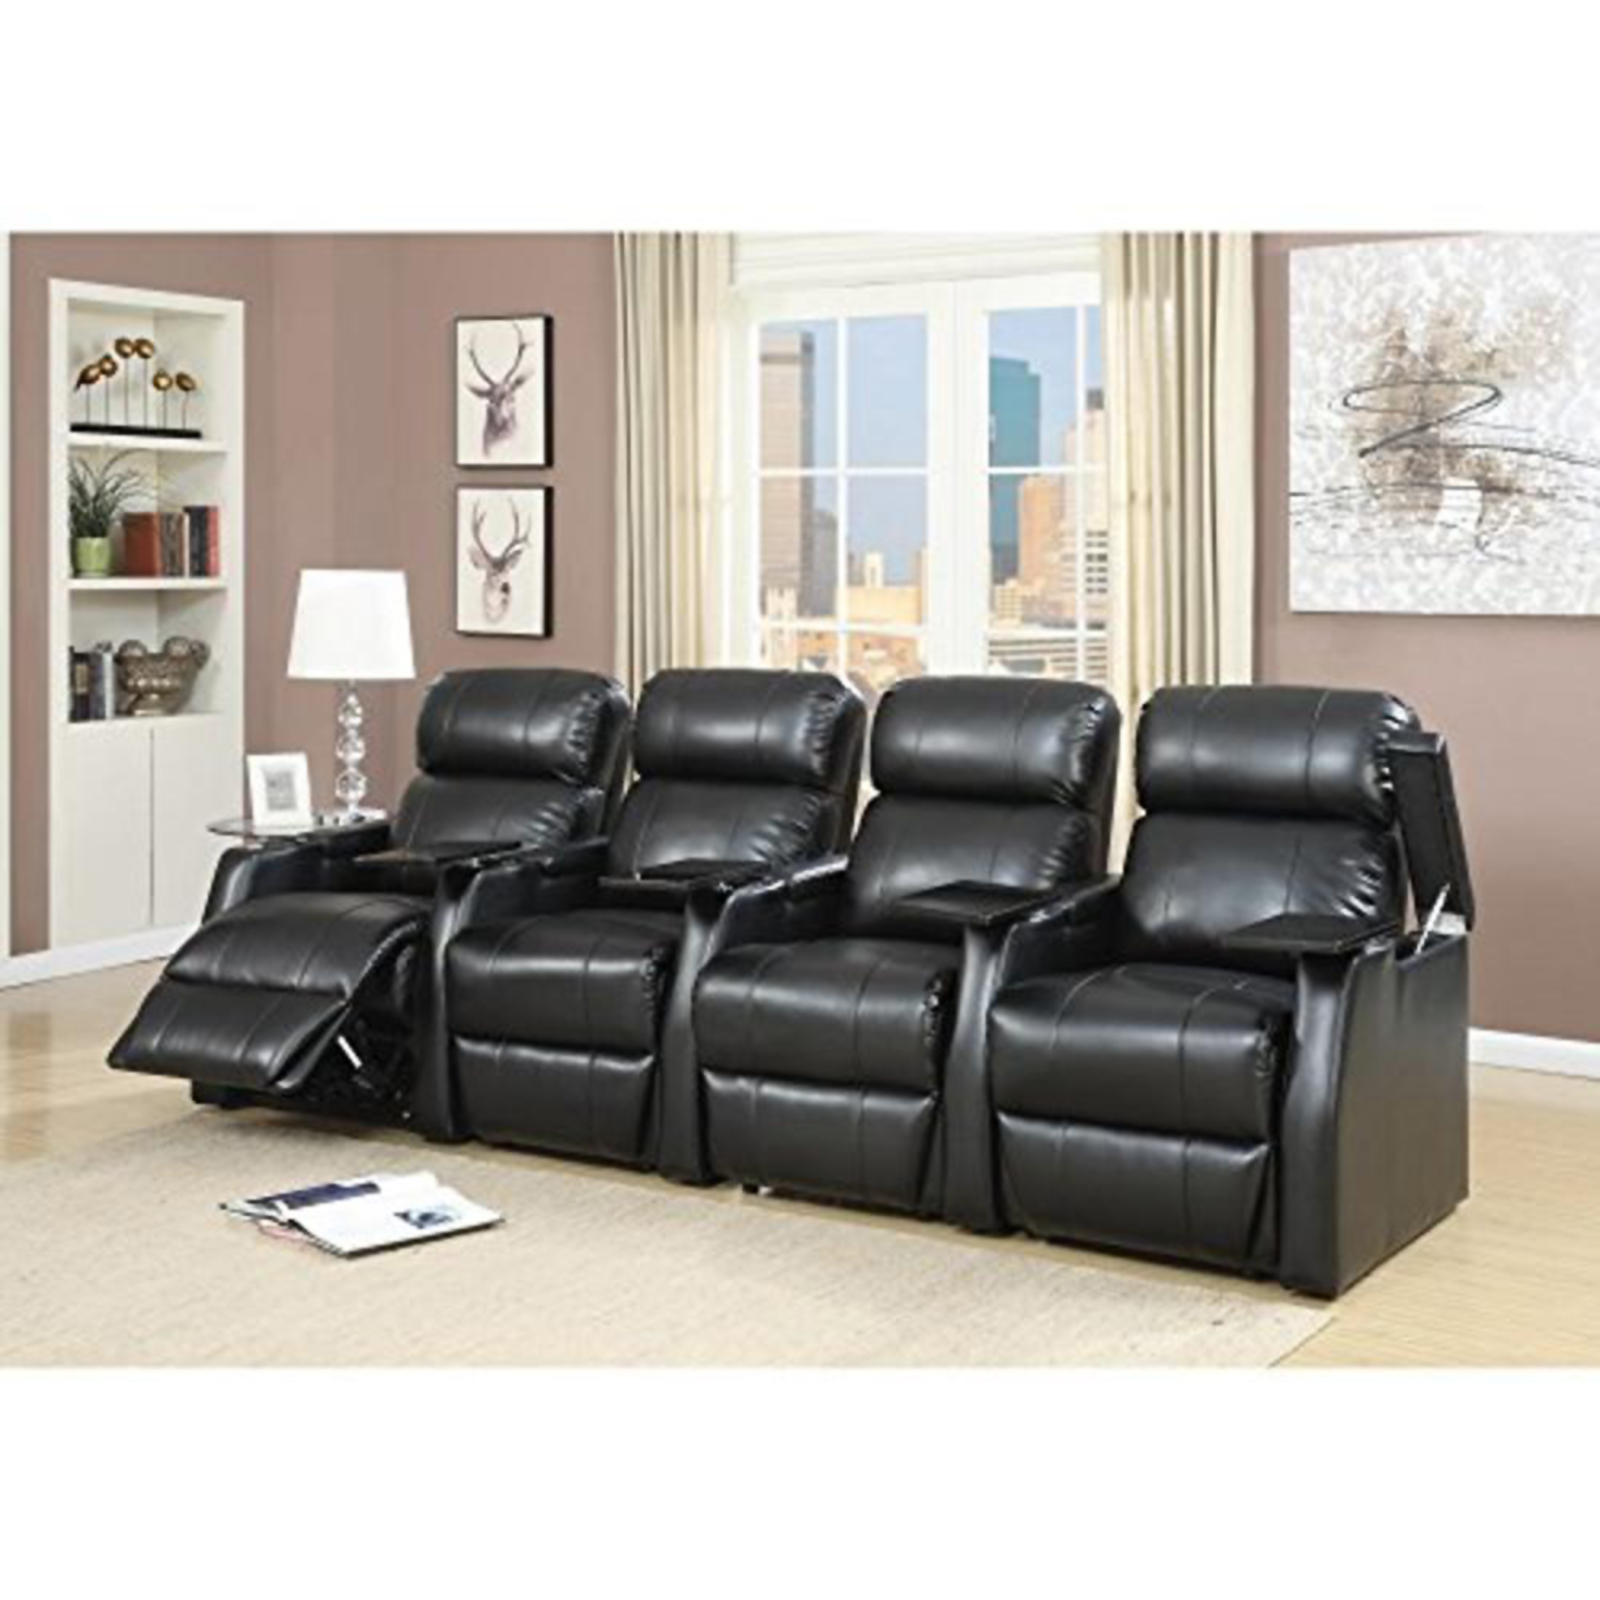 sears recliner chairs acrylic arm chair living room get comfortable at elements international cecille 4 piece home theater power set